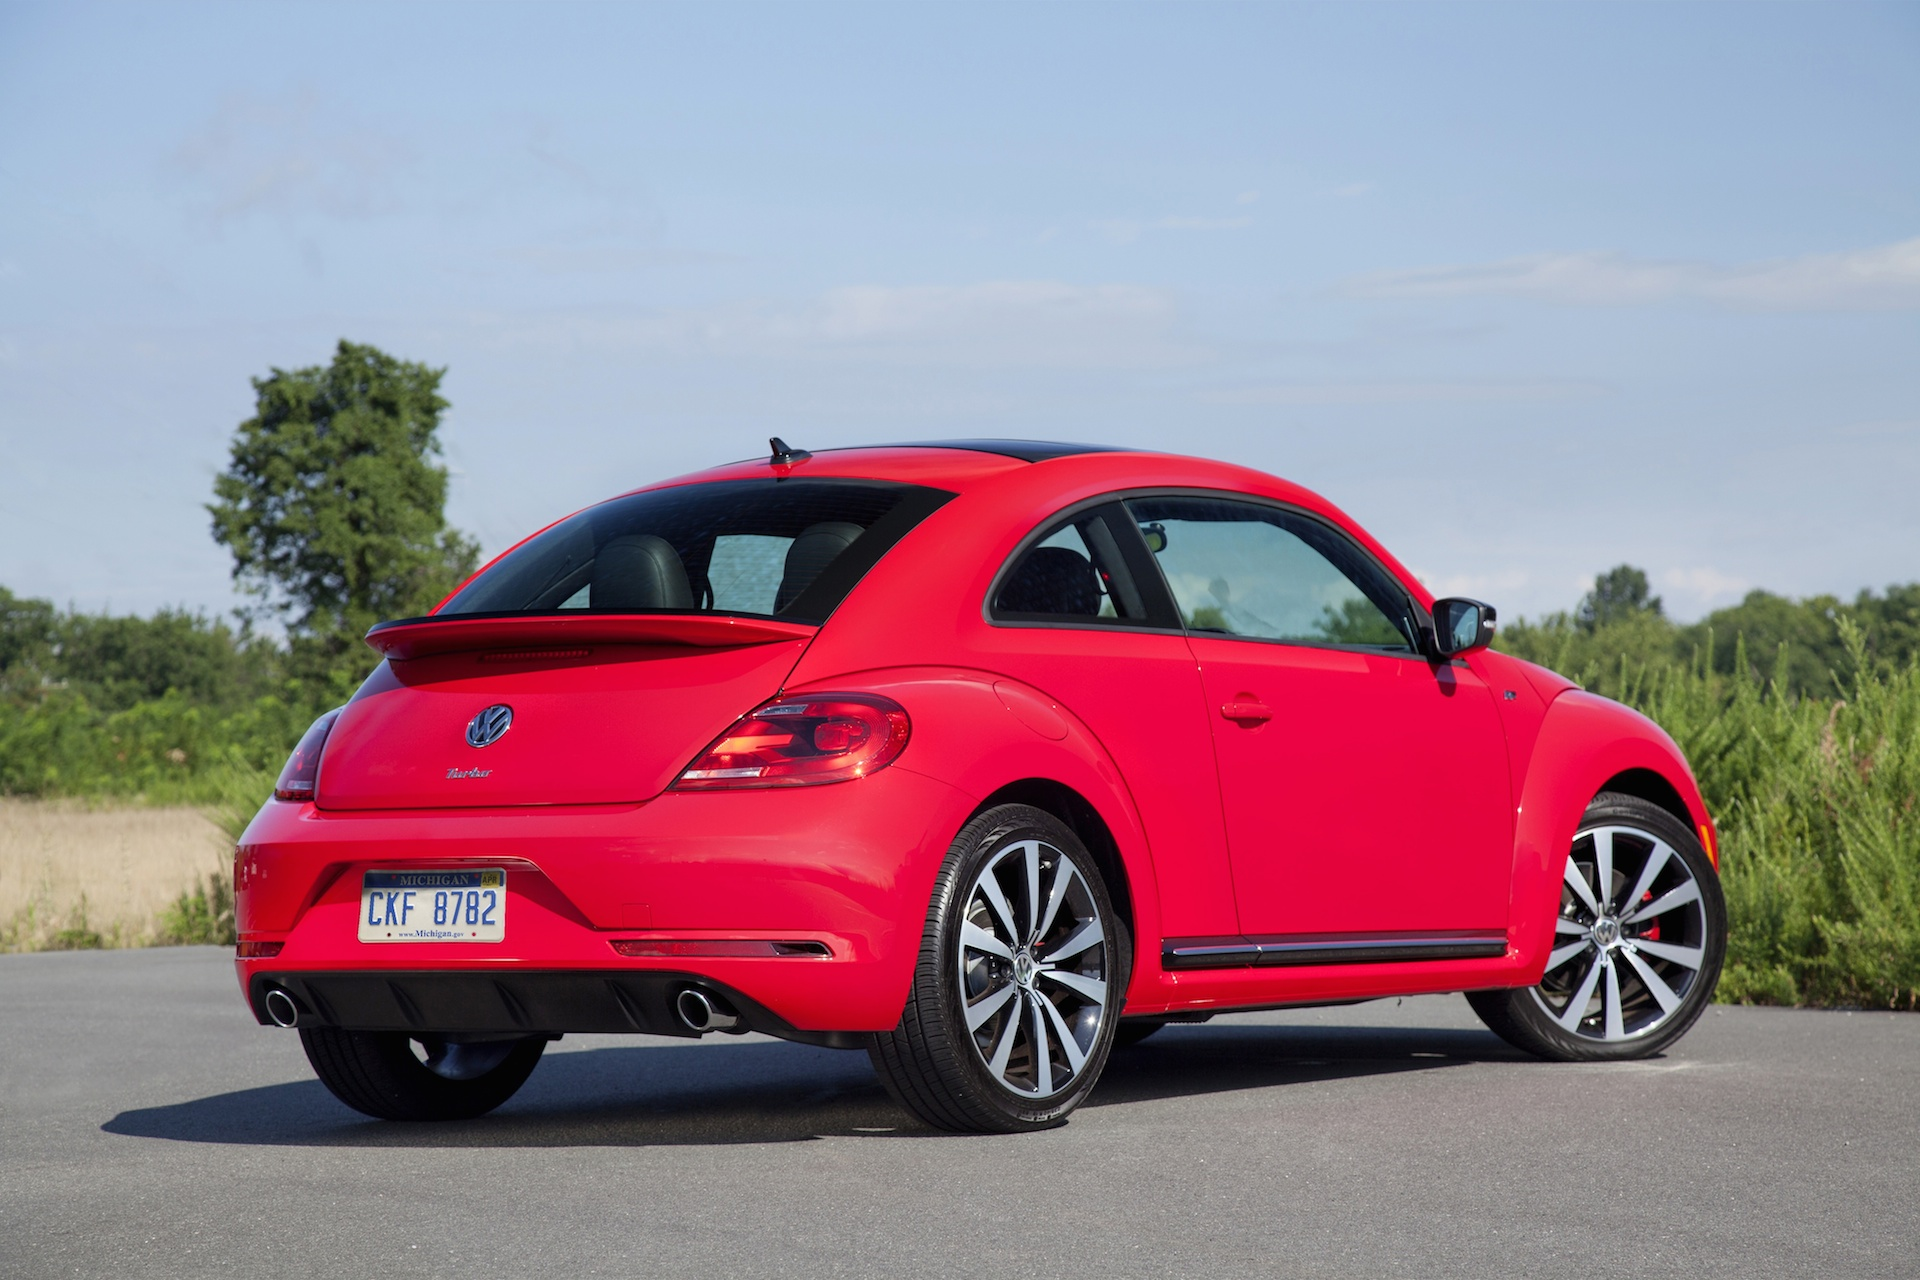 Bmw Of Fresno >> 2015 Volkswagen Beetle (VW) Review, Ratings, Specs, Prices, and Photos - The Car Connection